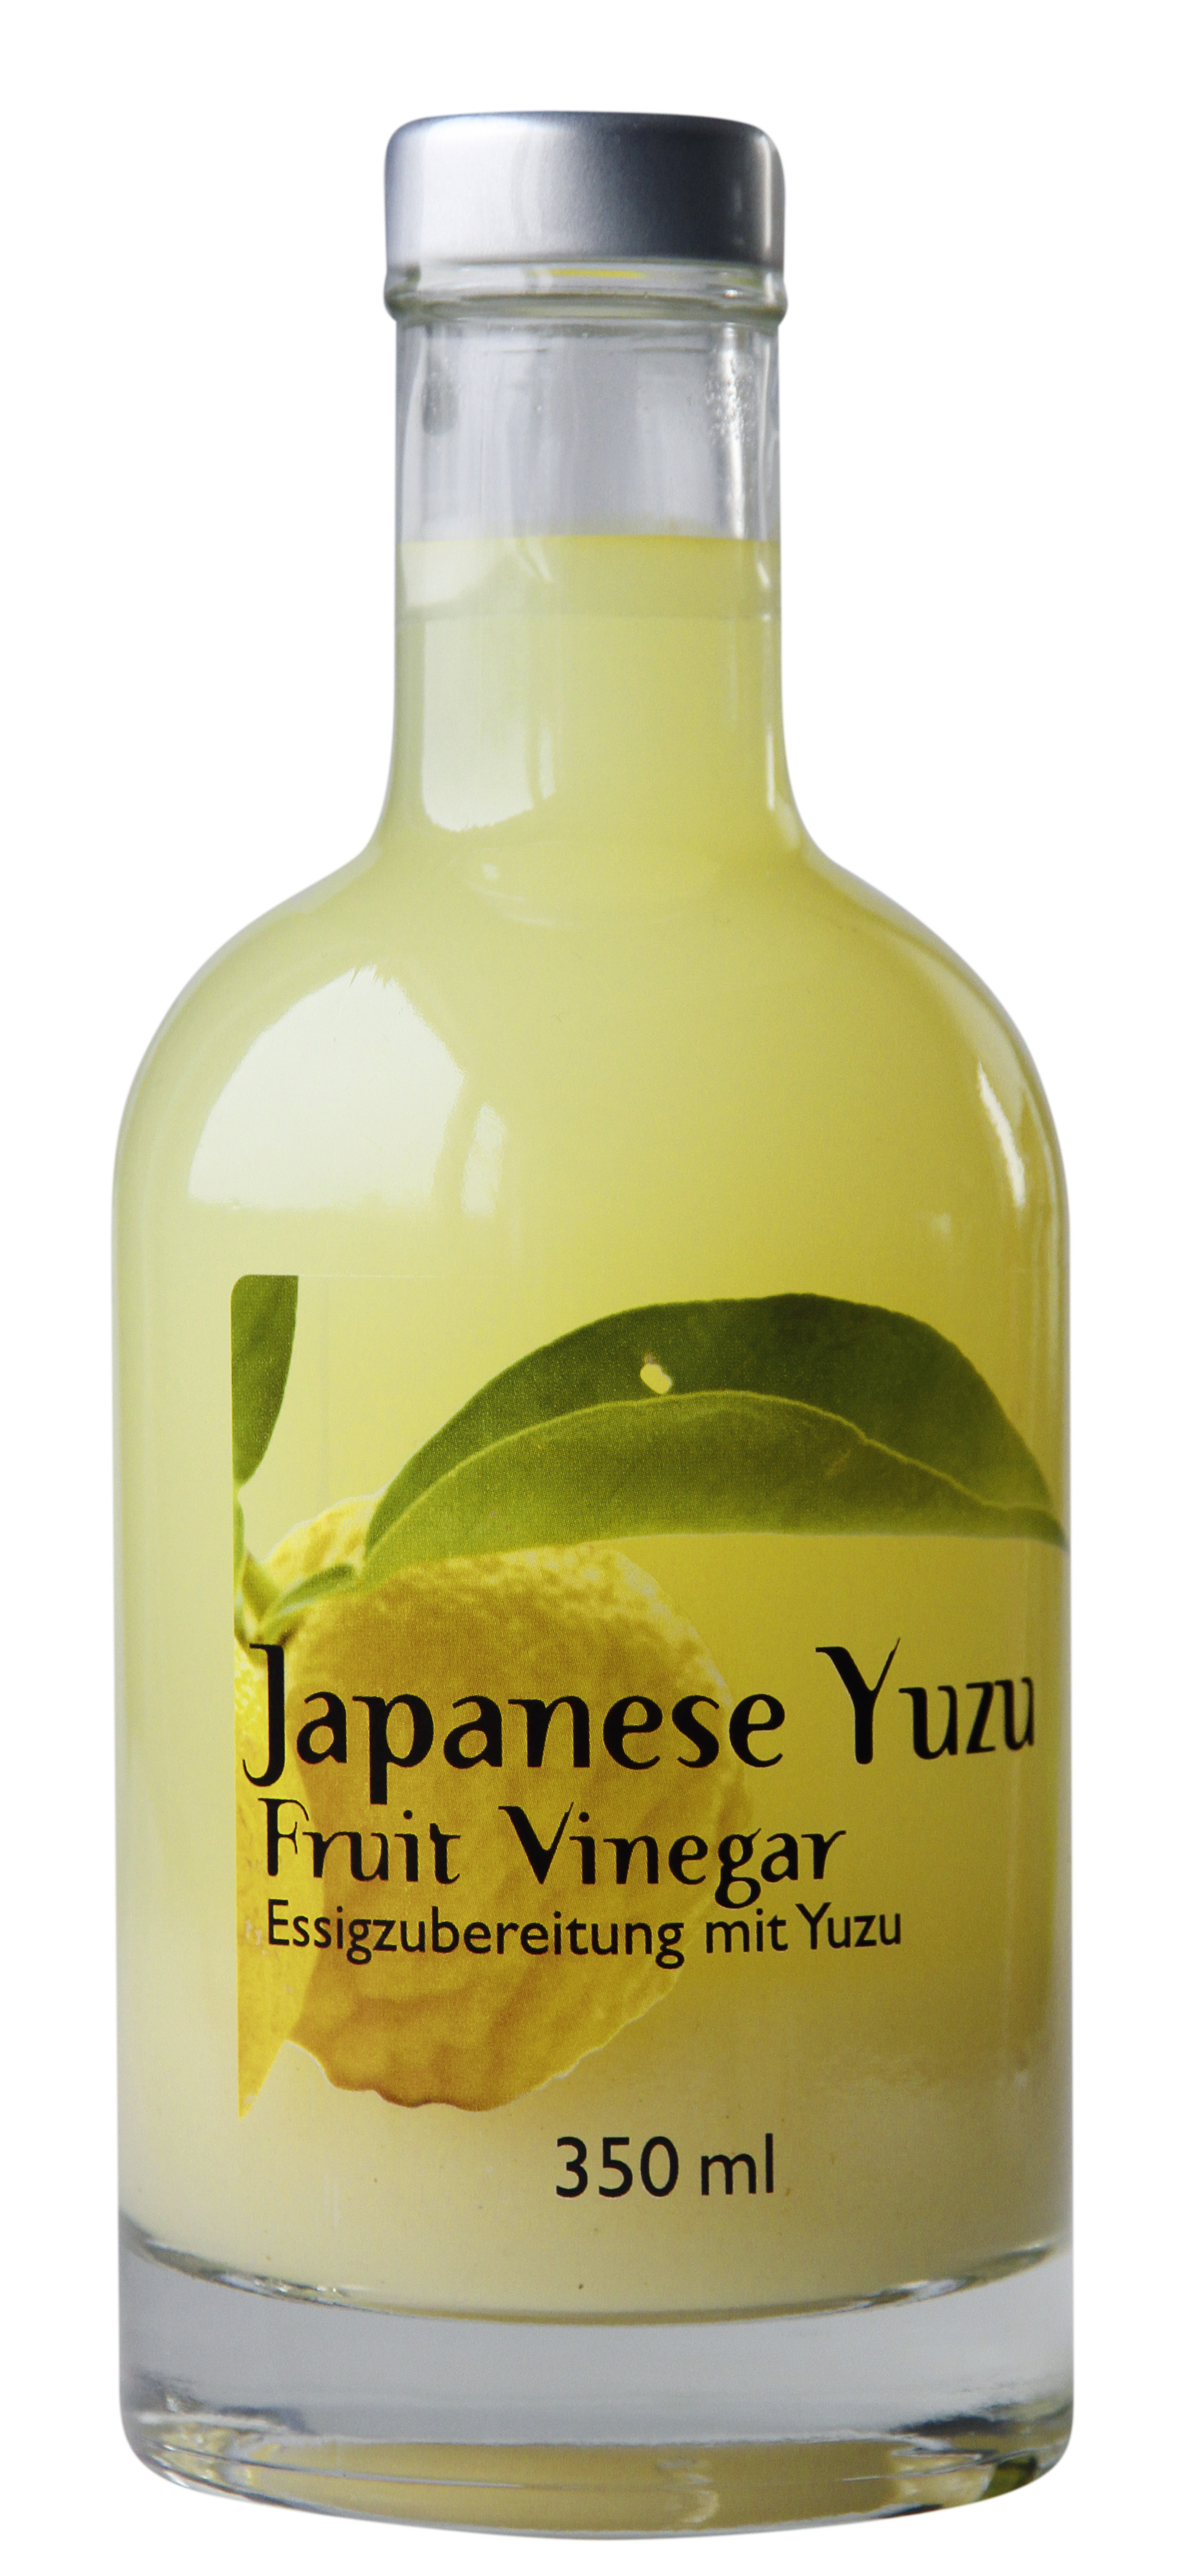 Japanese Yuzu Fruit Vinegar